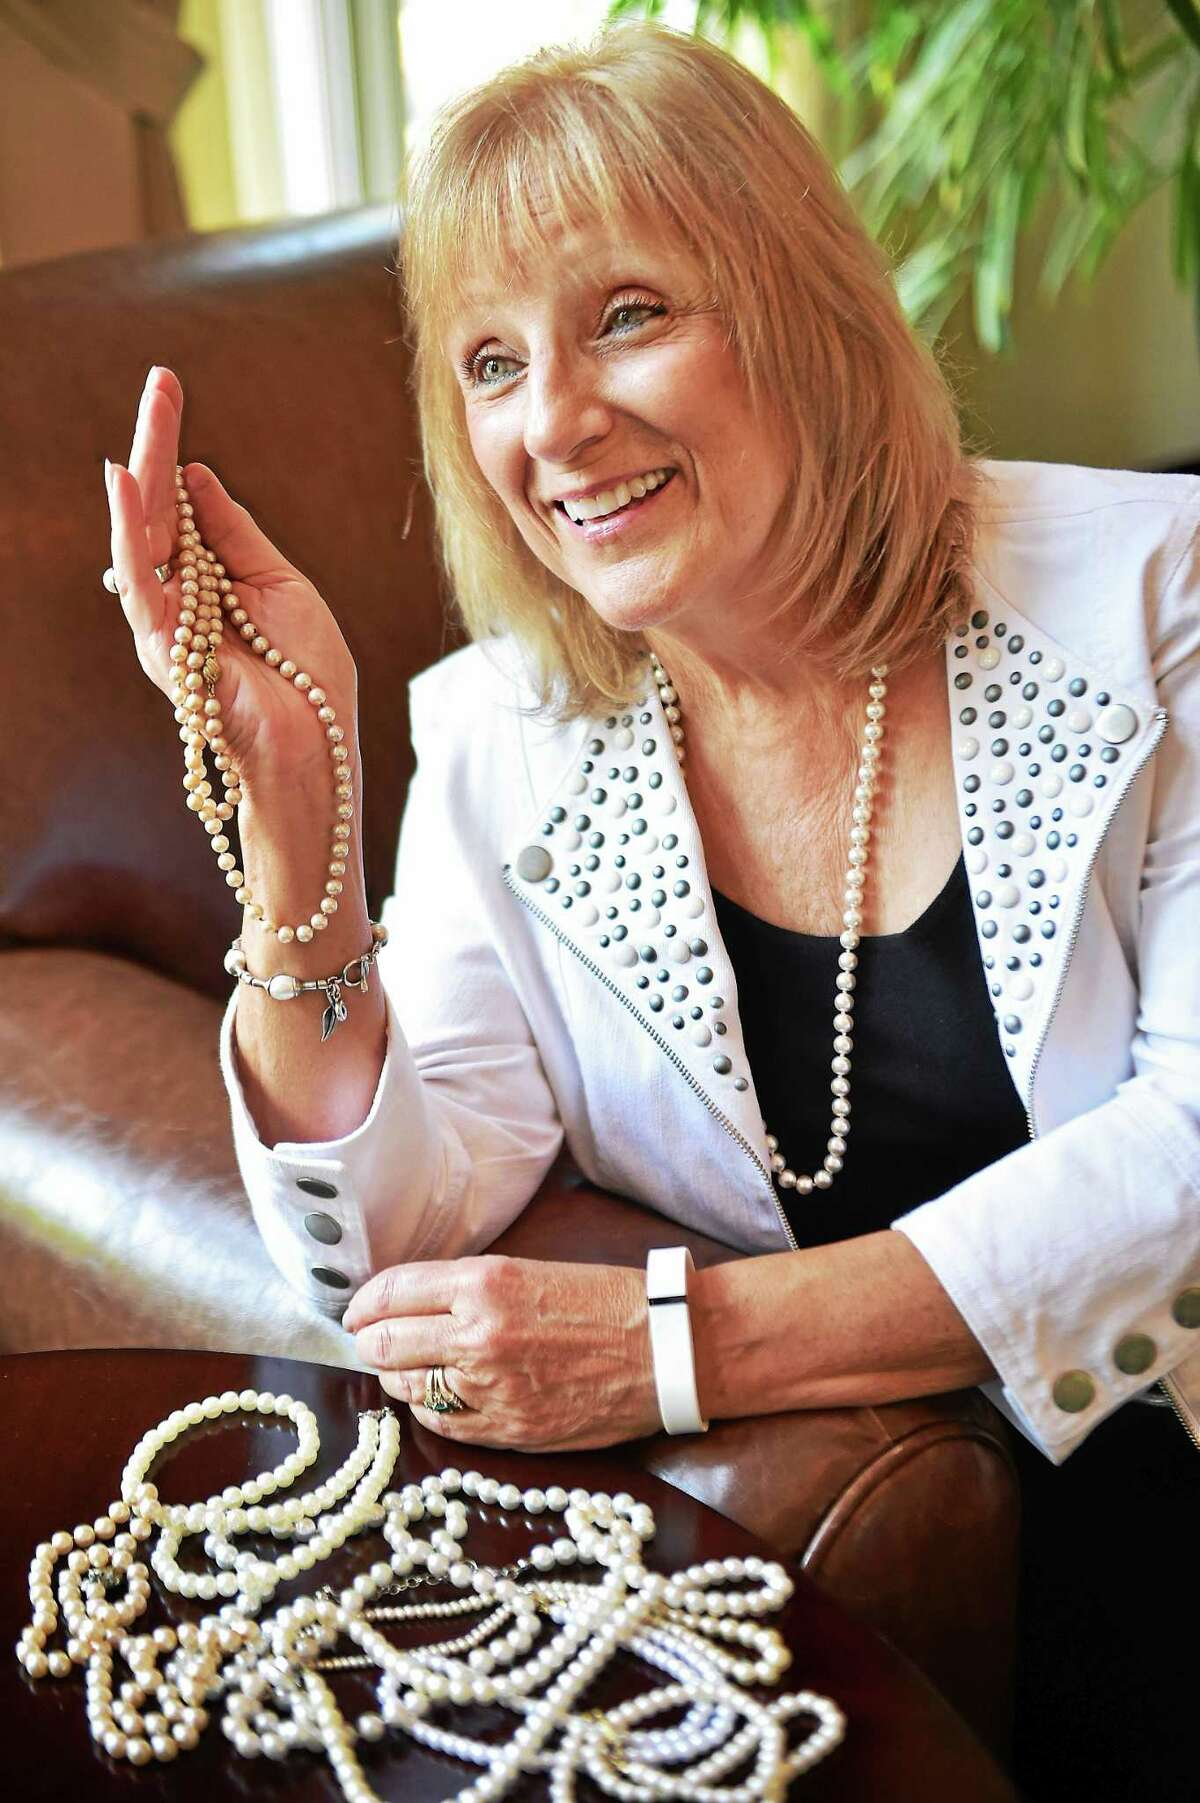 Eldercare specialist Jay Ayr, founder of Pearls to Girls and Caps to Chaps, is photographed at the Madison House at 34 Wildwood Avenue in Madison, Wednesday, July 1, 2015.